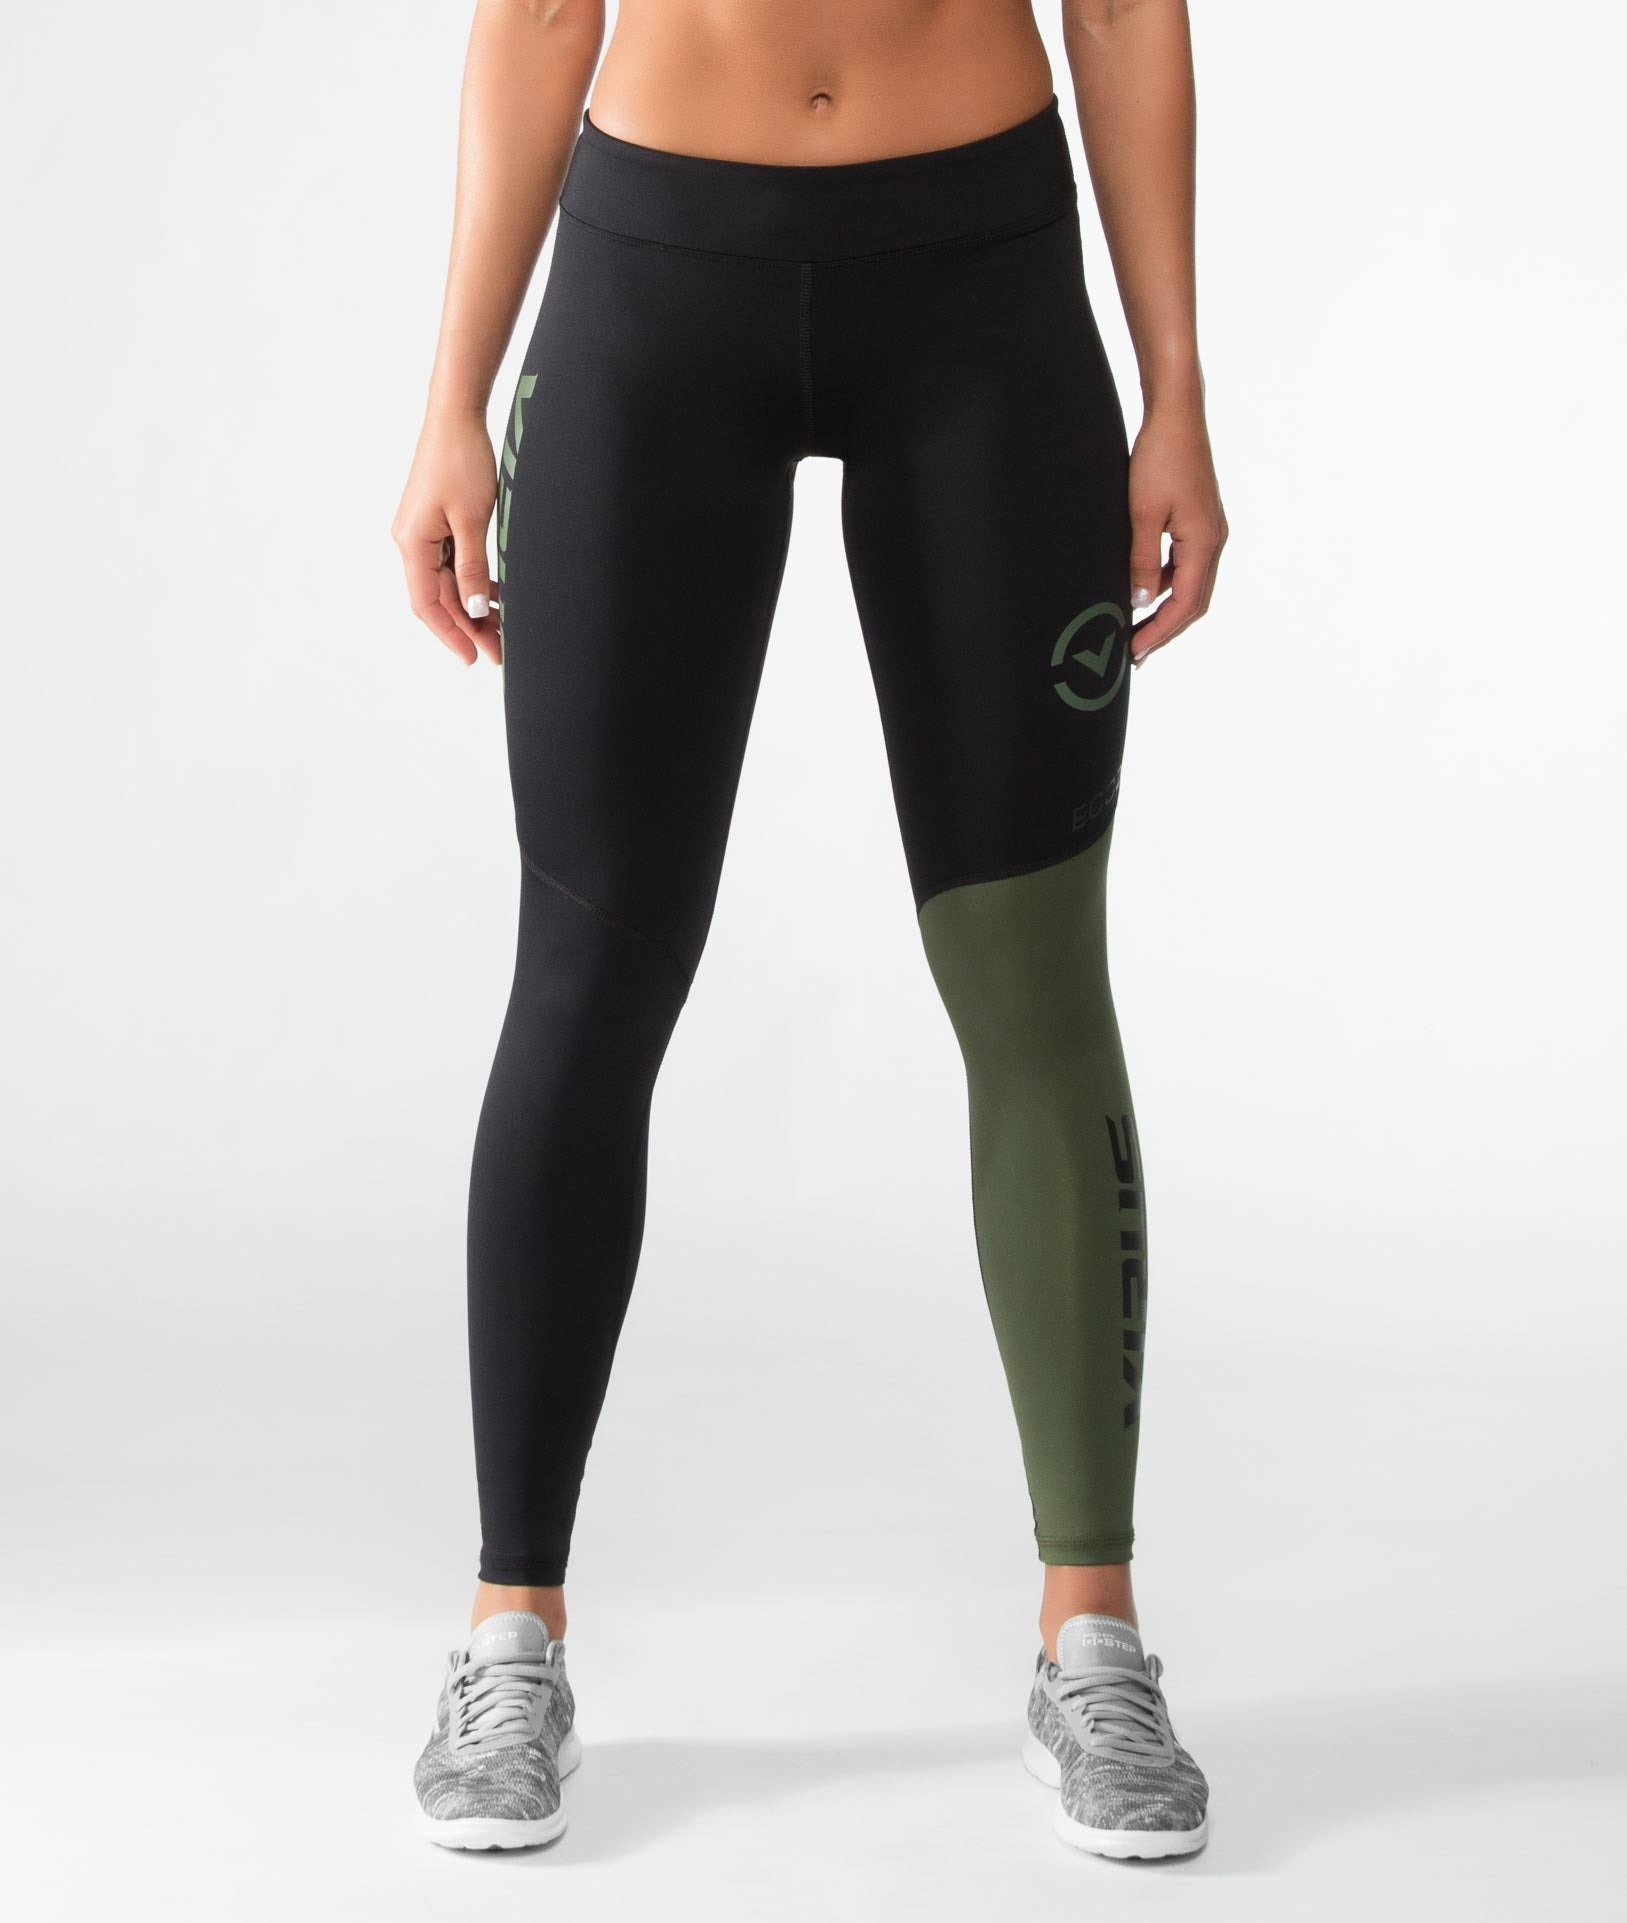 Women's Stay Cool V2 Compression Pant (ECo21) Olive Green